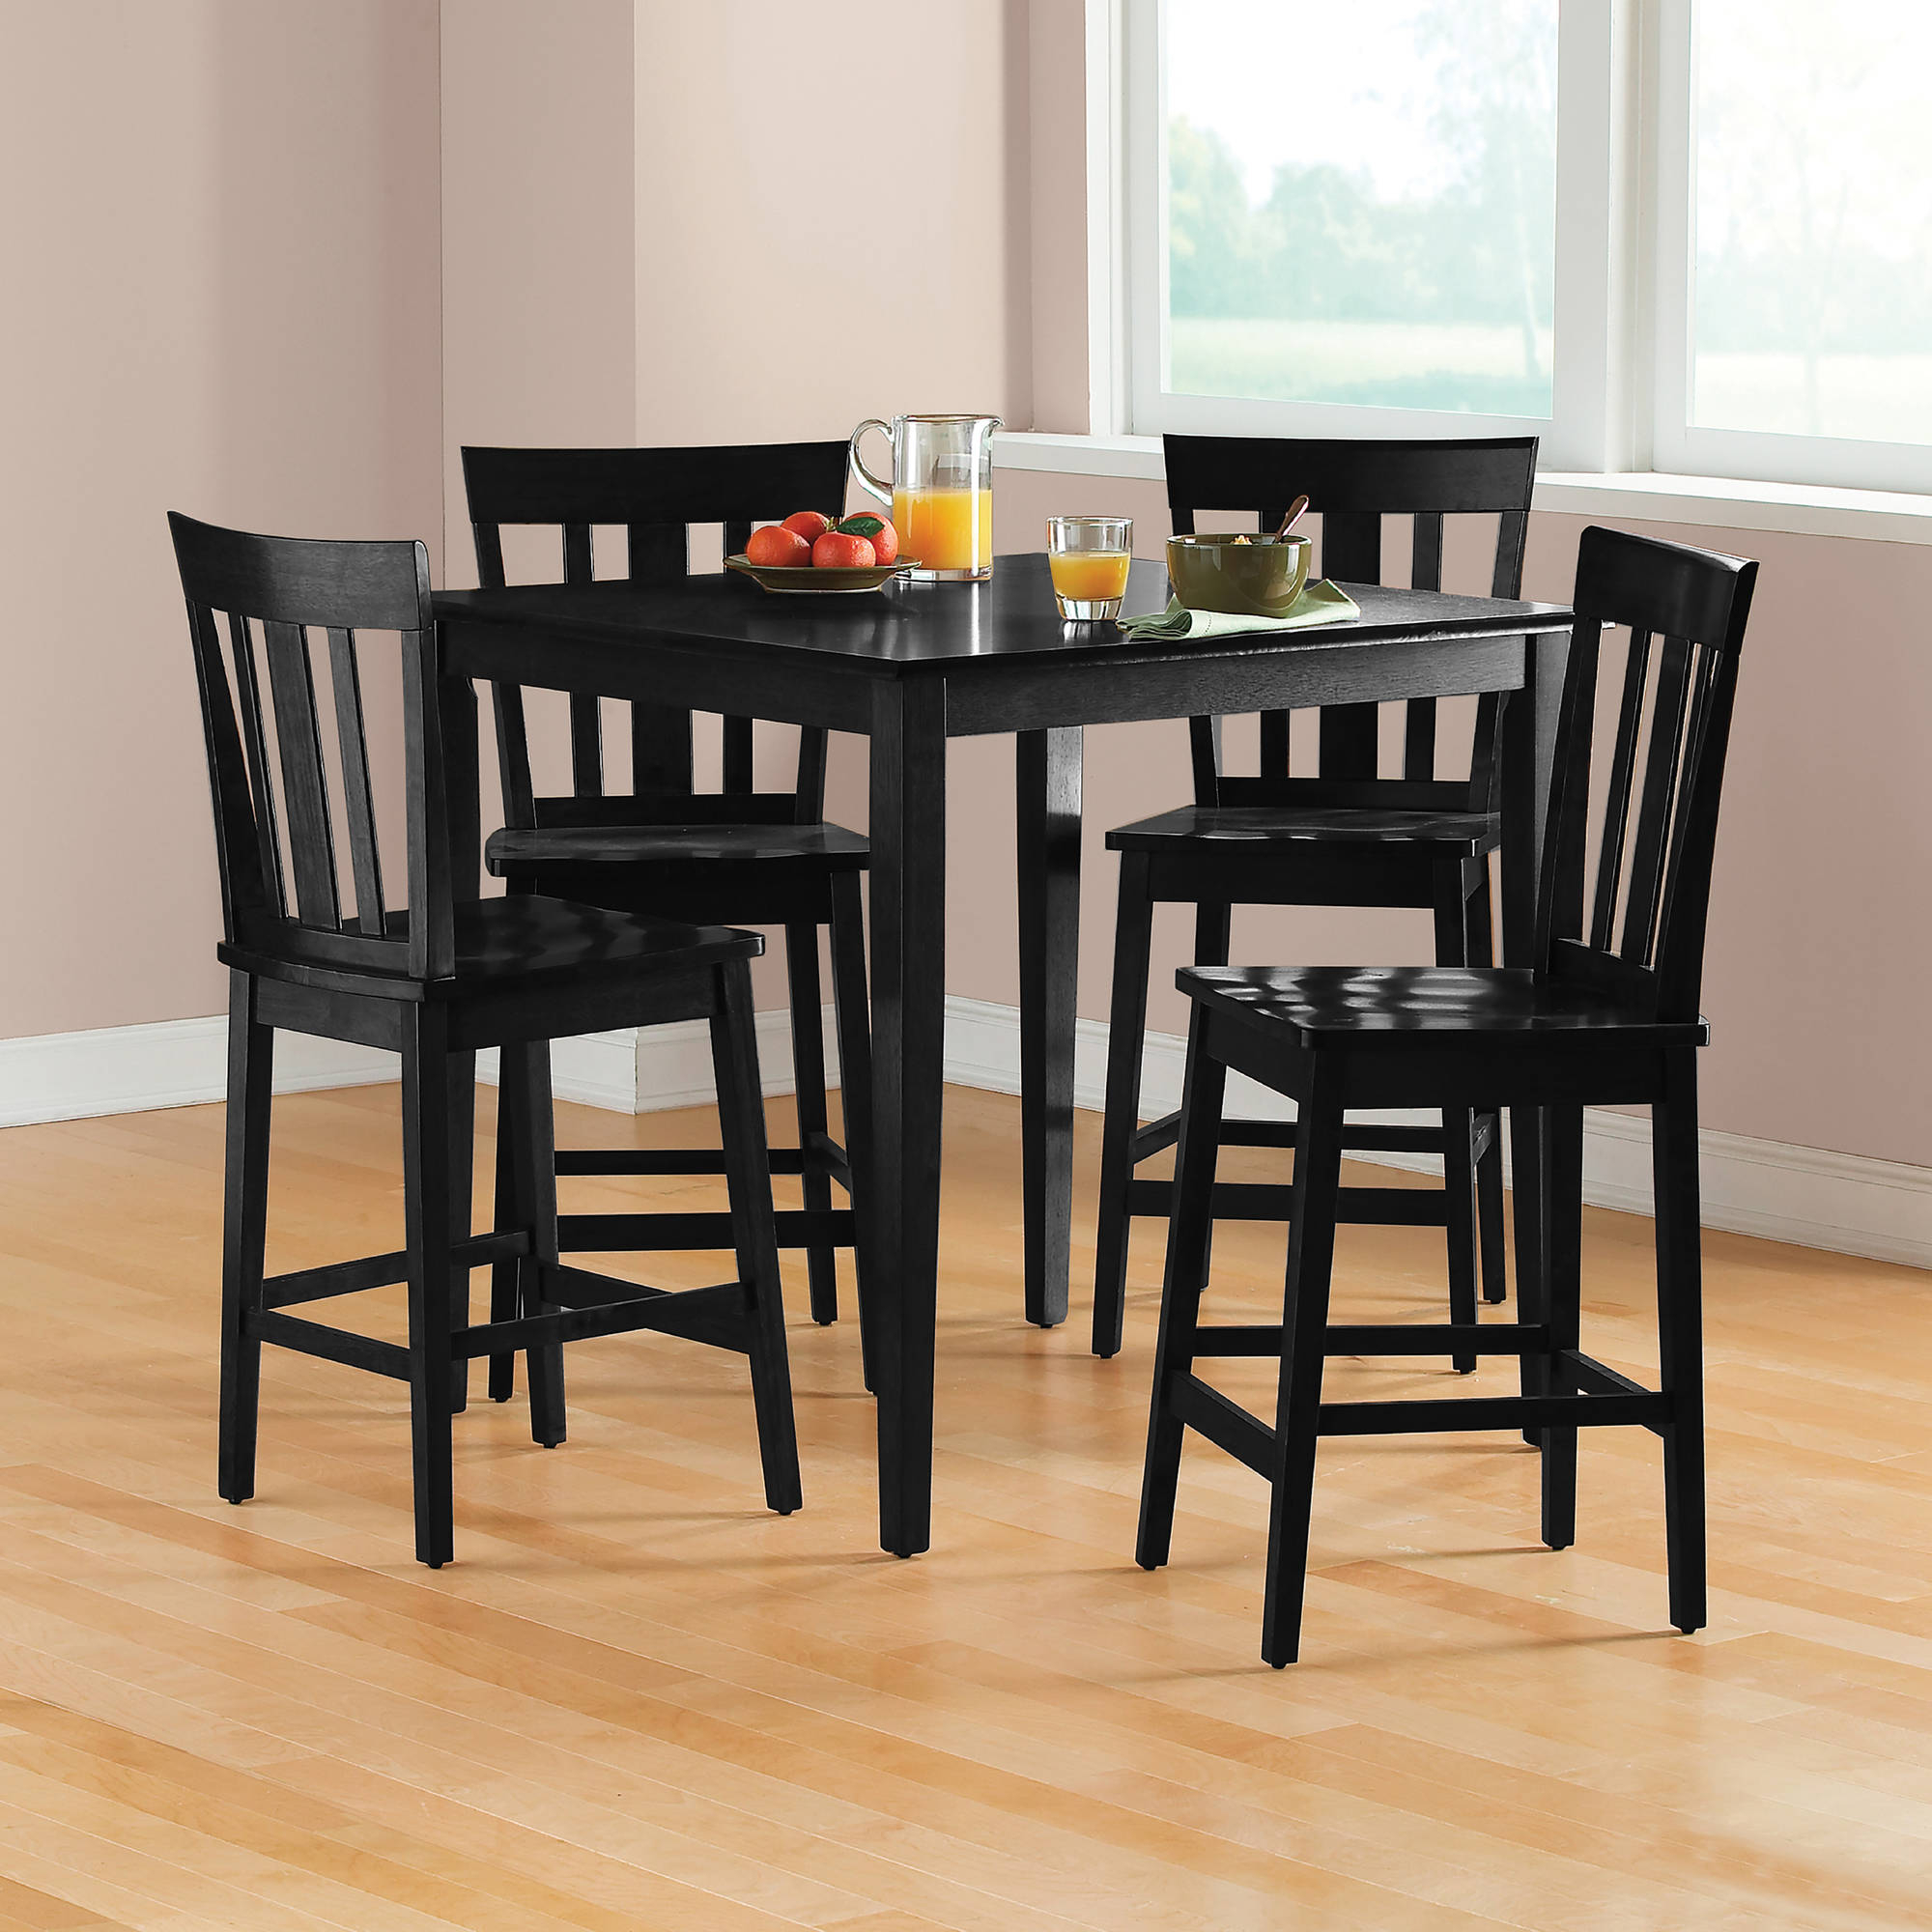 Target Marketing Systems 3 Piece Breakfast Nook Dining Set – Walmart Inside 2019 Crownover 3 Piece Bar Table Sets (View 22 of 25)